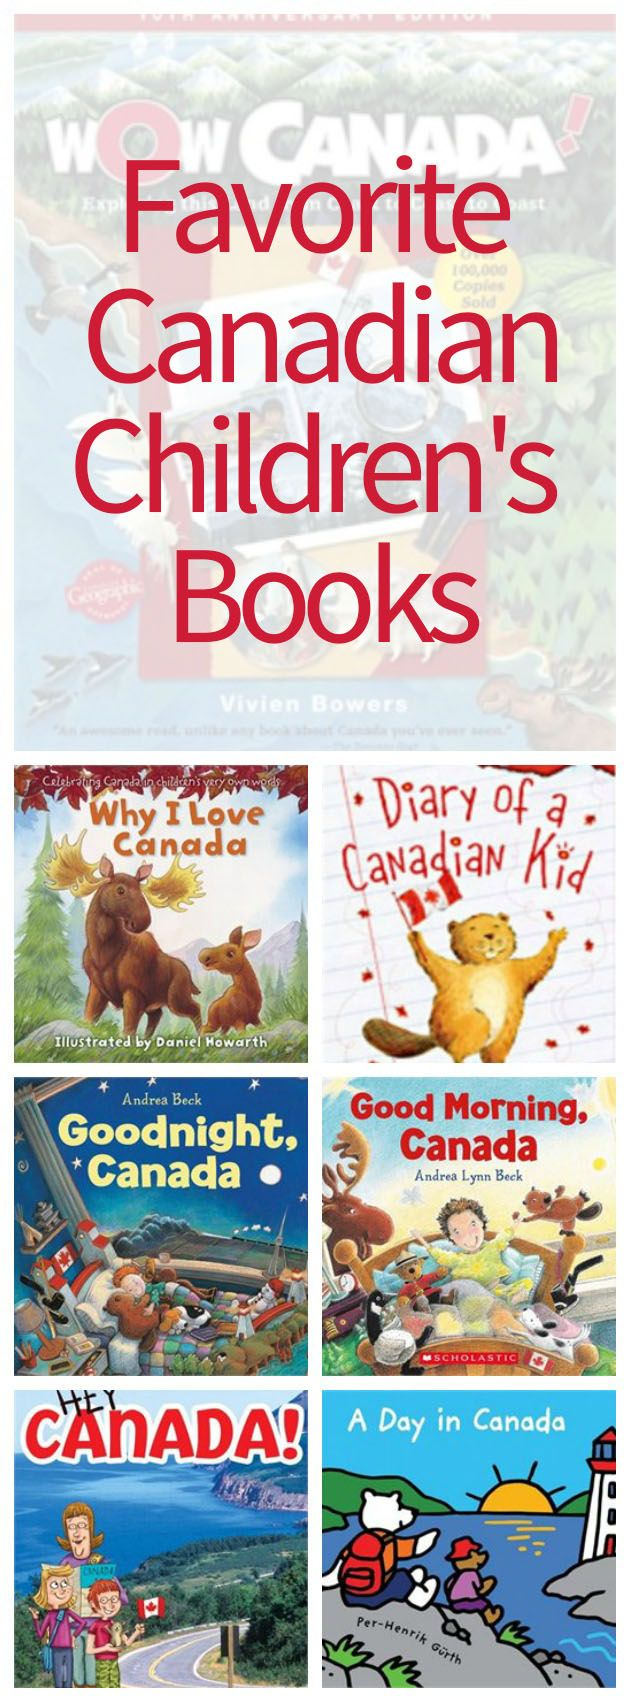 I love books and I encourage my children to read books. Living in Canadian, I am quick to grab up Canadian children's books, and books written by Canadians.